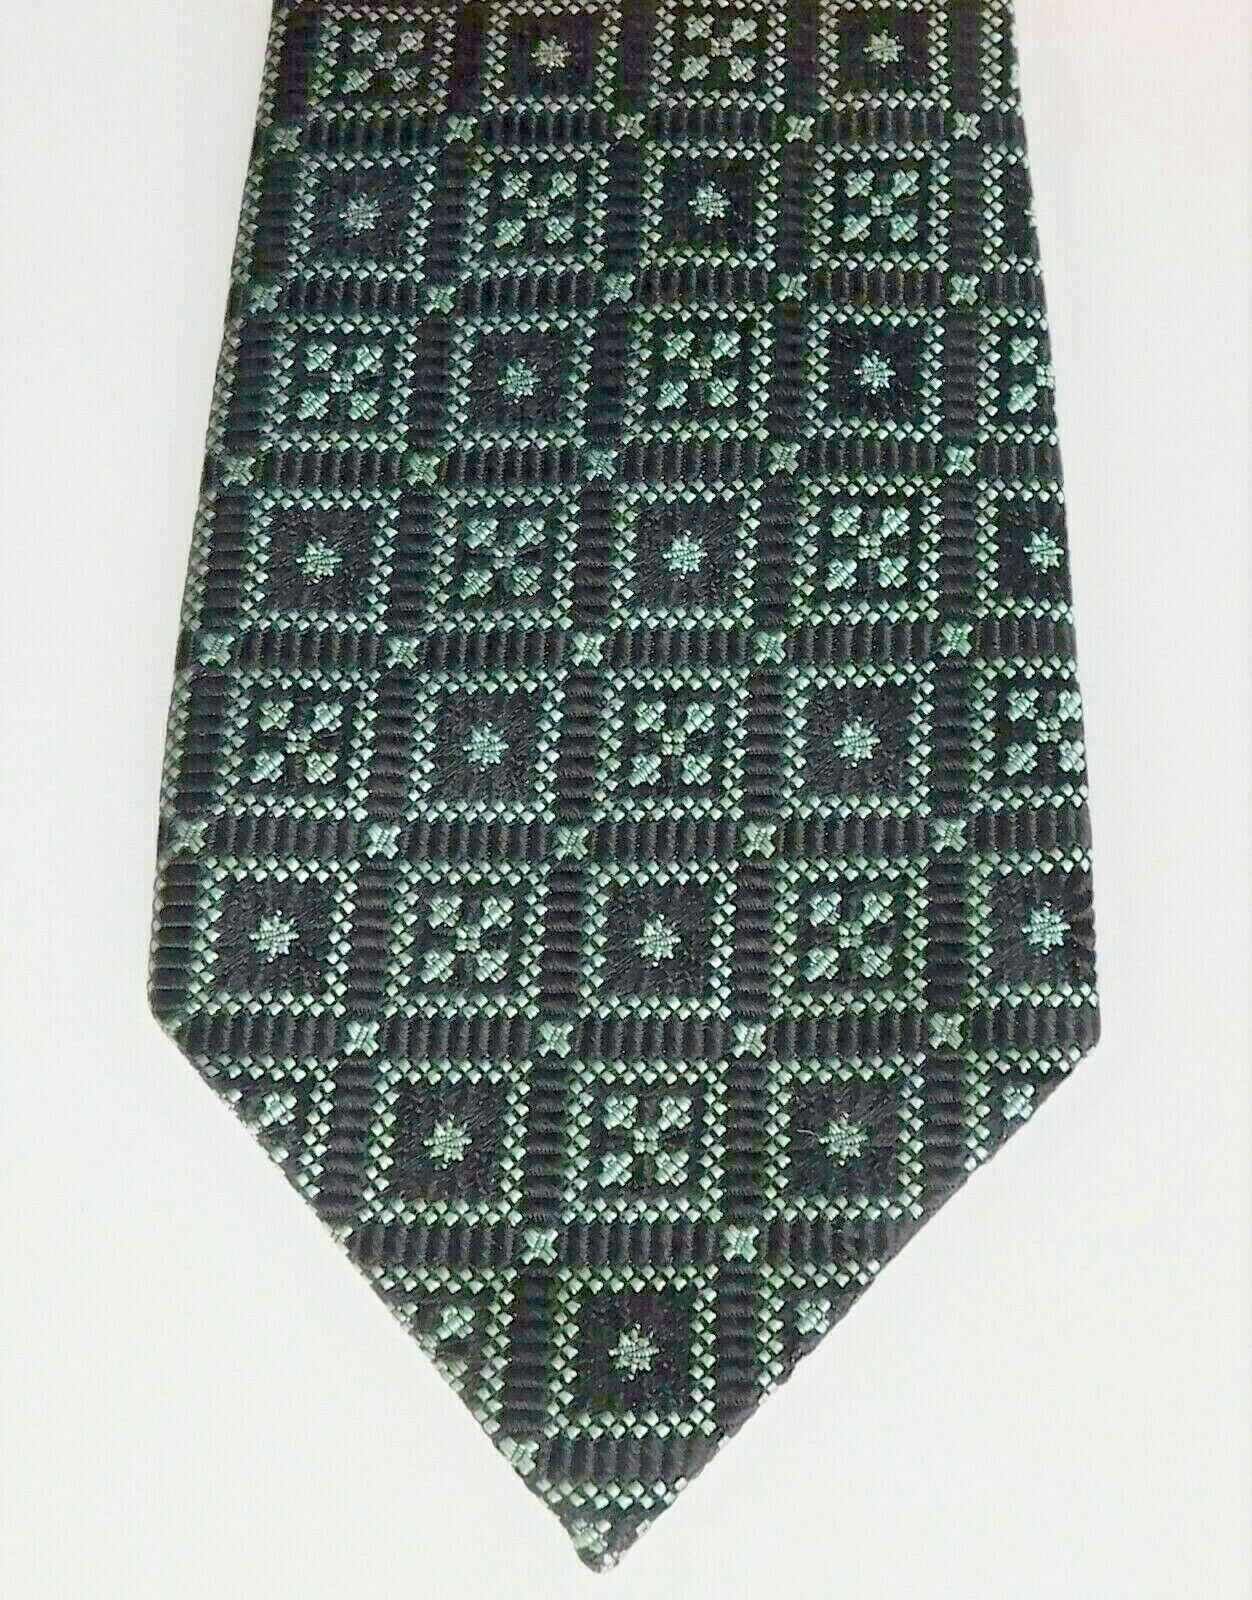 Hodgkinson Jermyn Street tie from English silk squares vintage 1960s black green